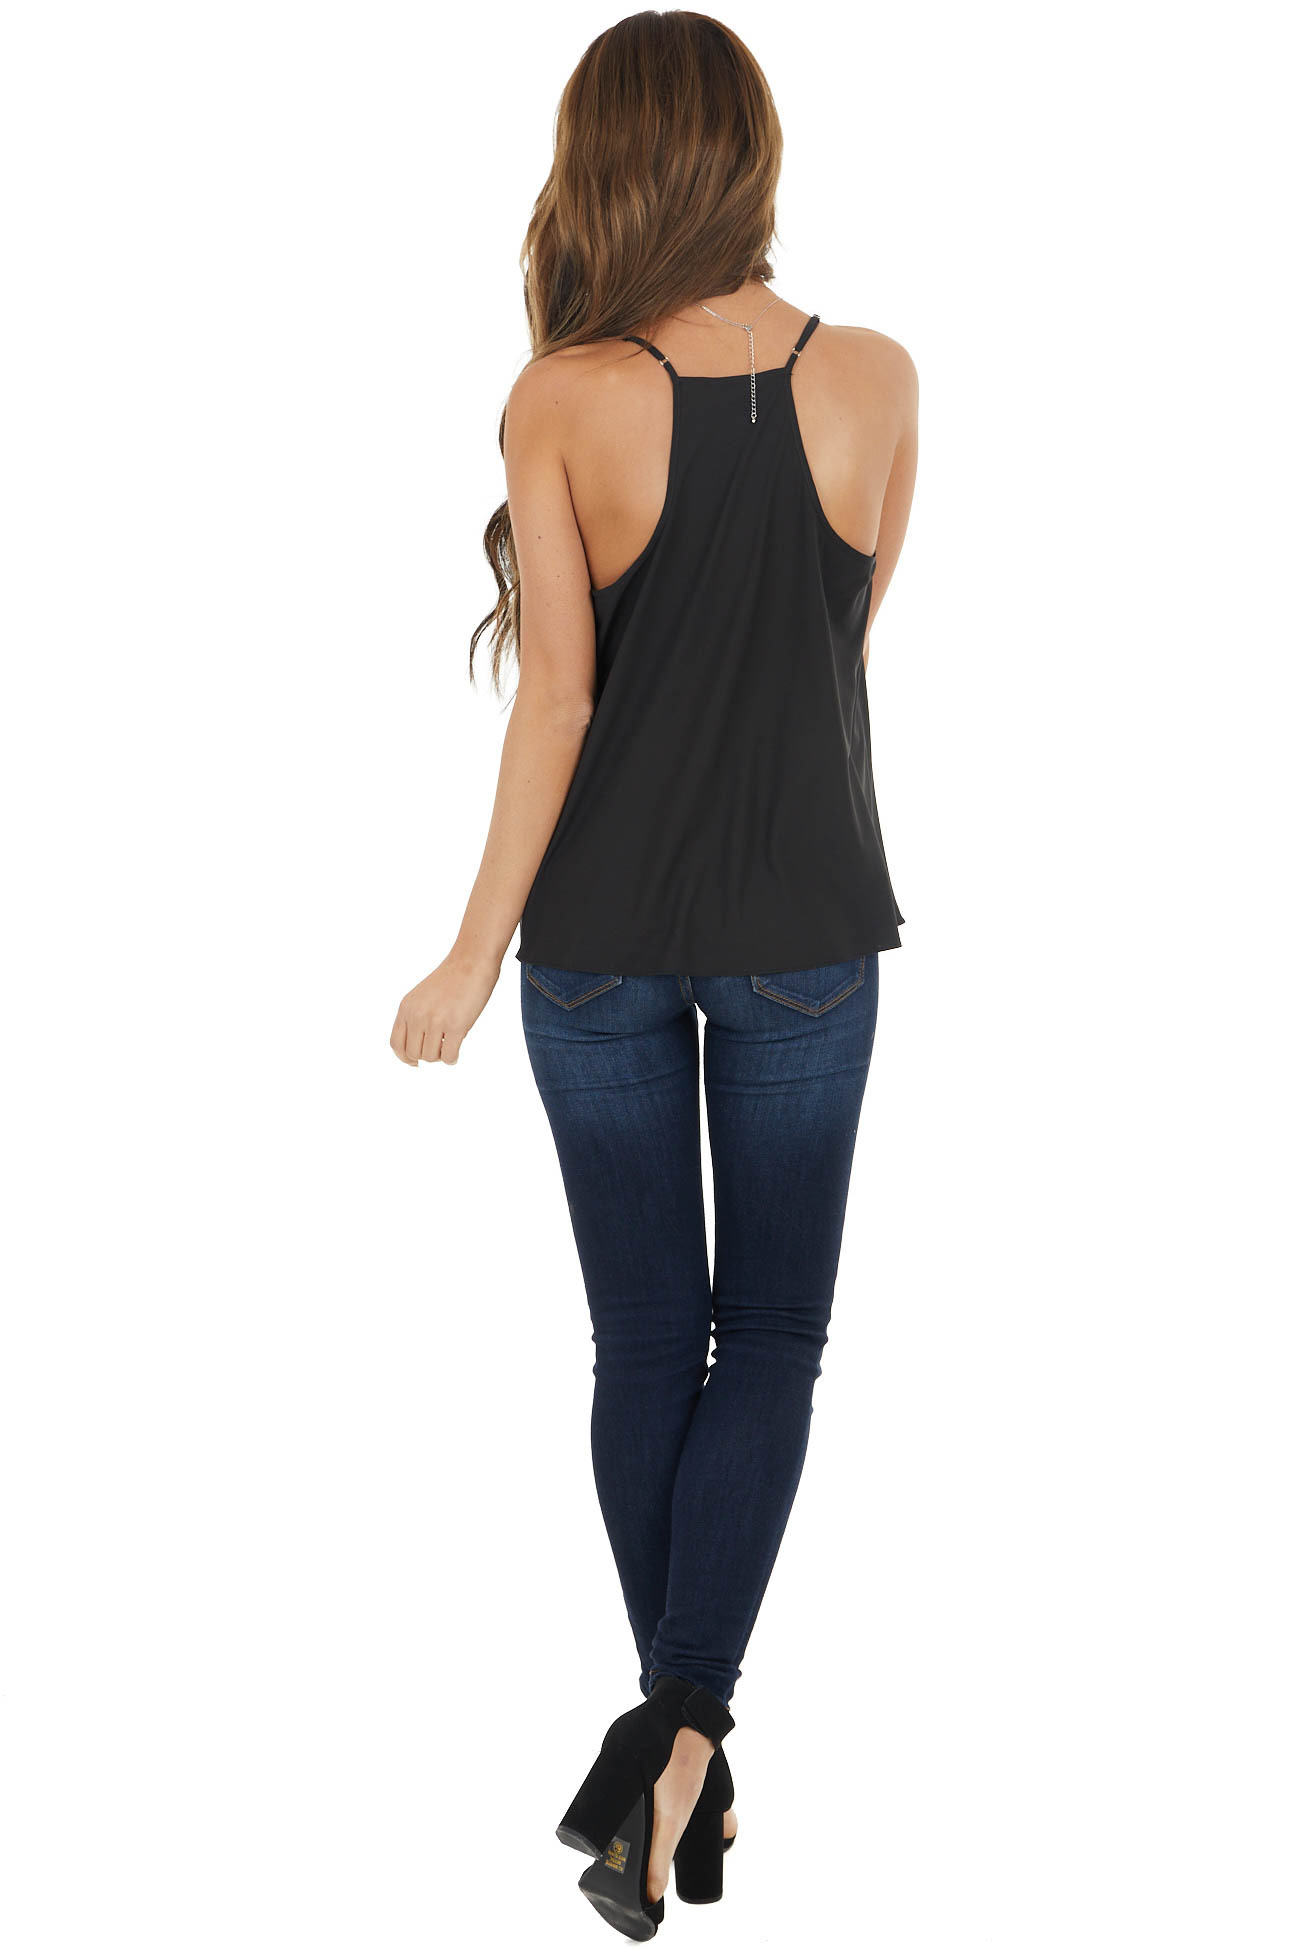 Black Racerback Woven Camisole with Draped Neckline